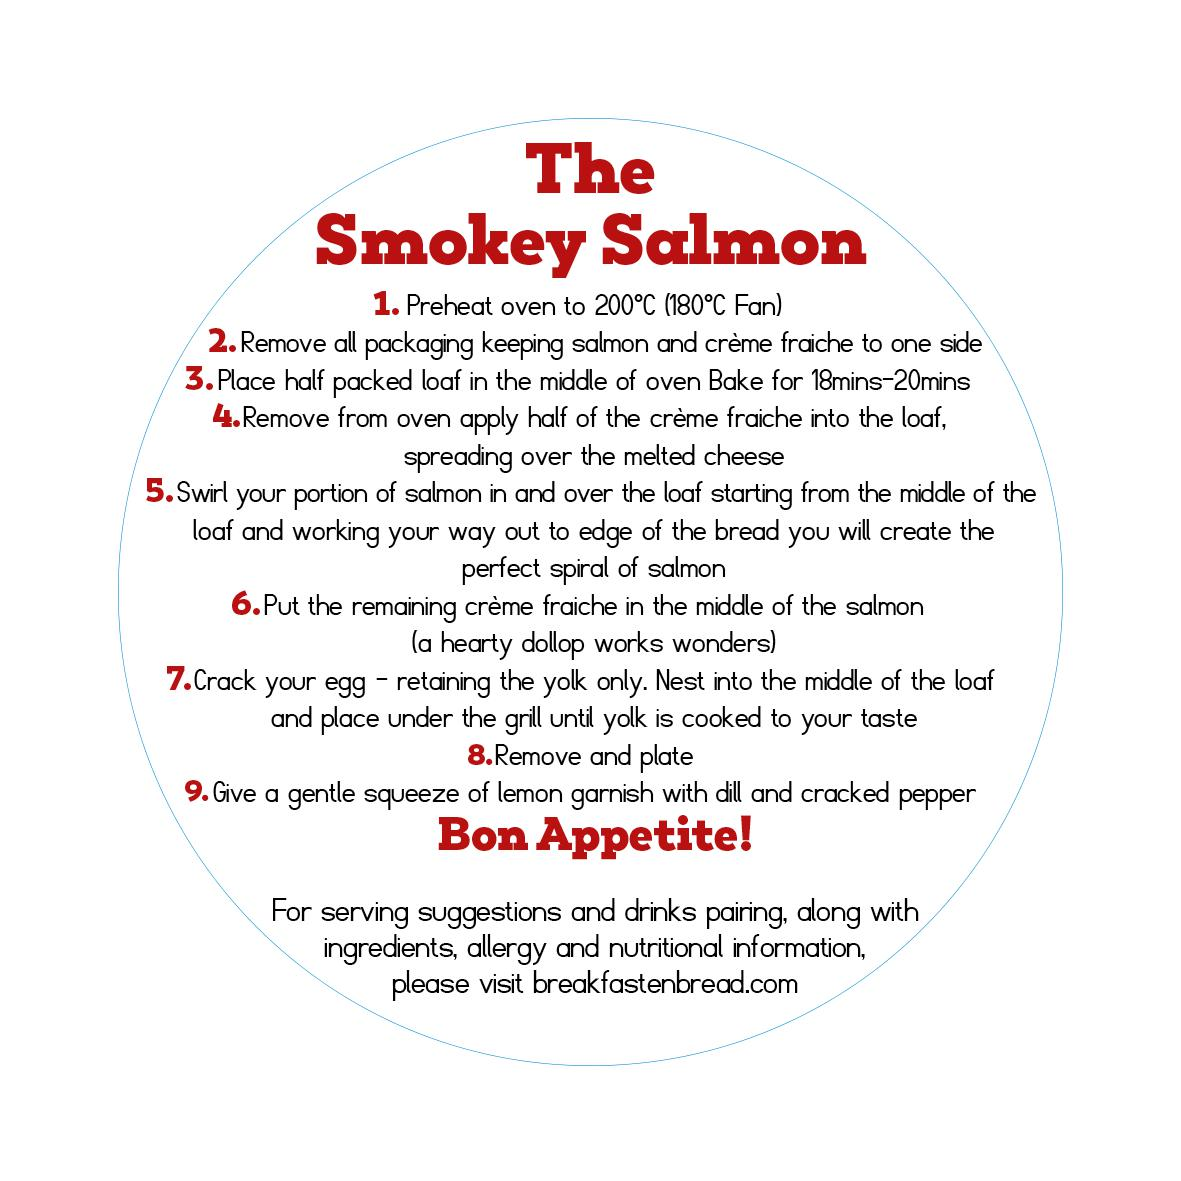 THE SMOKEY SALMON